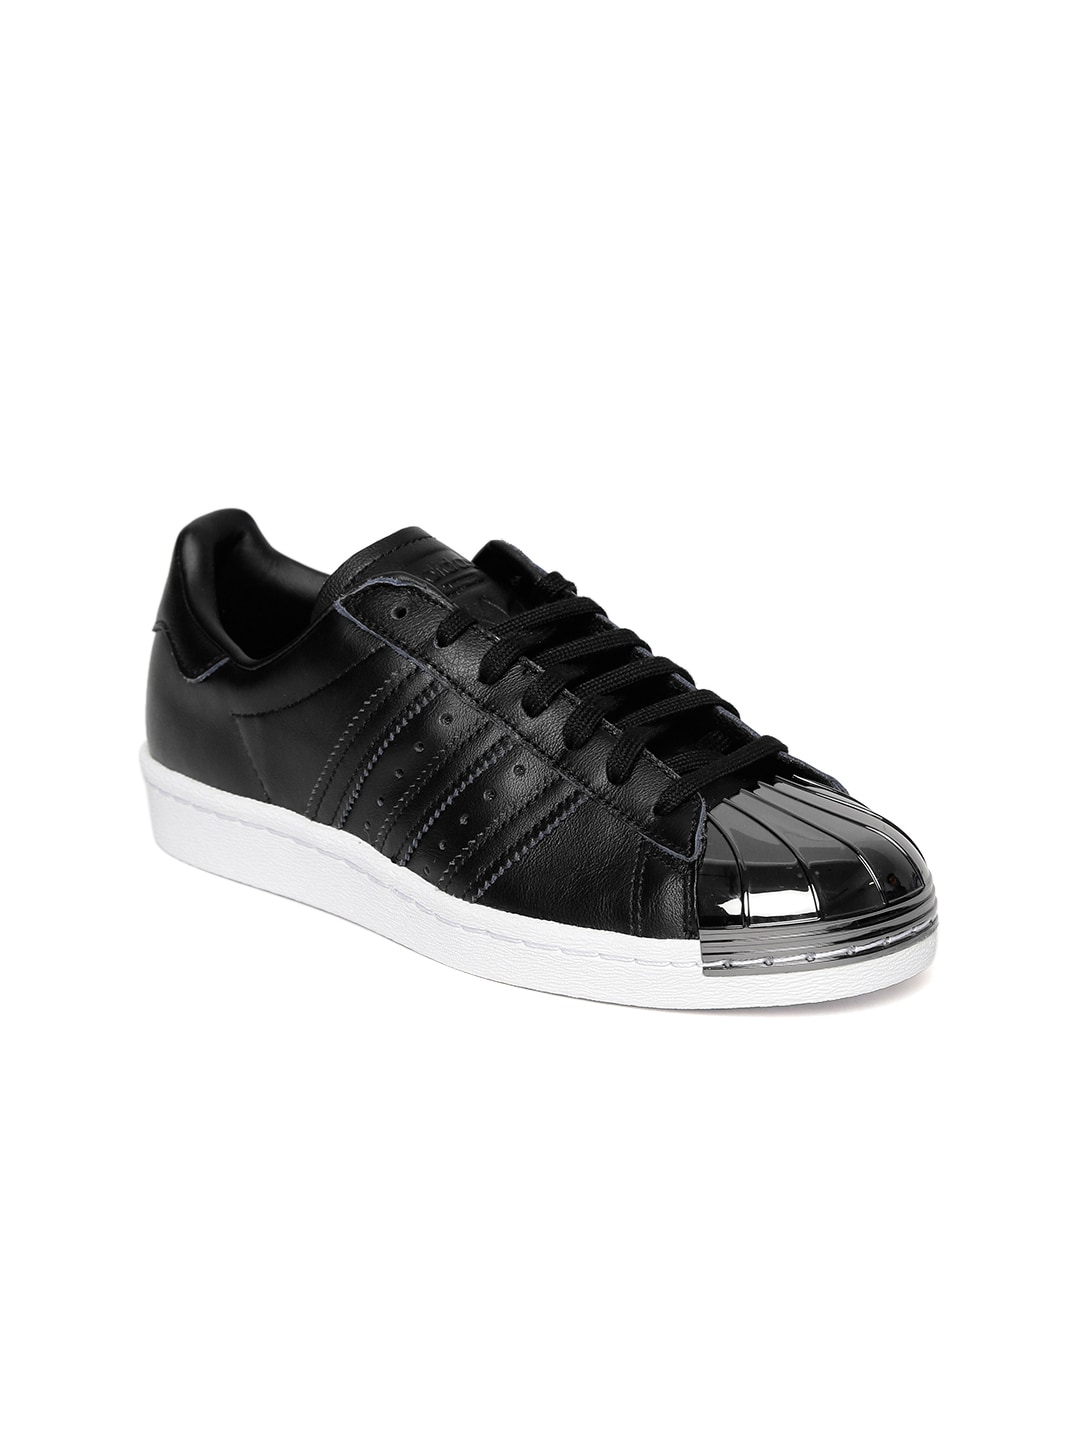 199fb33334e3 Adidas Superstar - Buy Adidas Superstar online in India